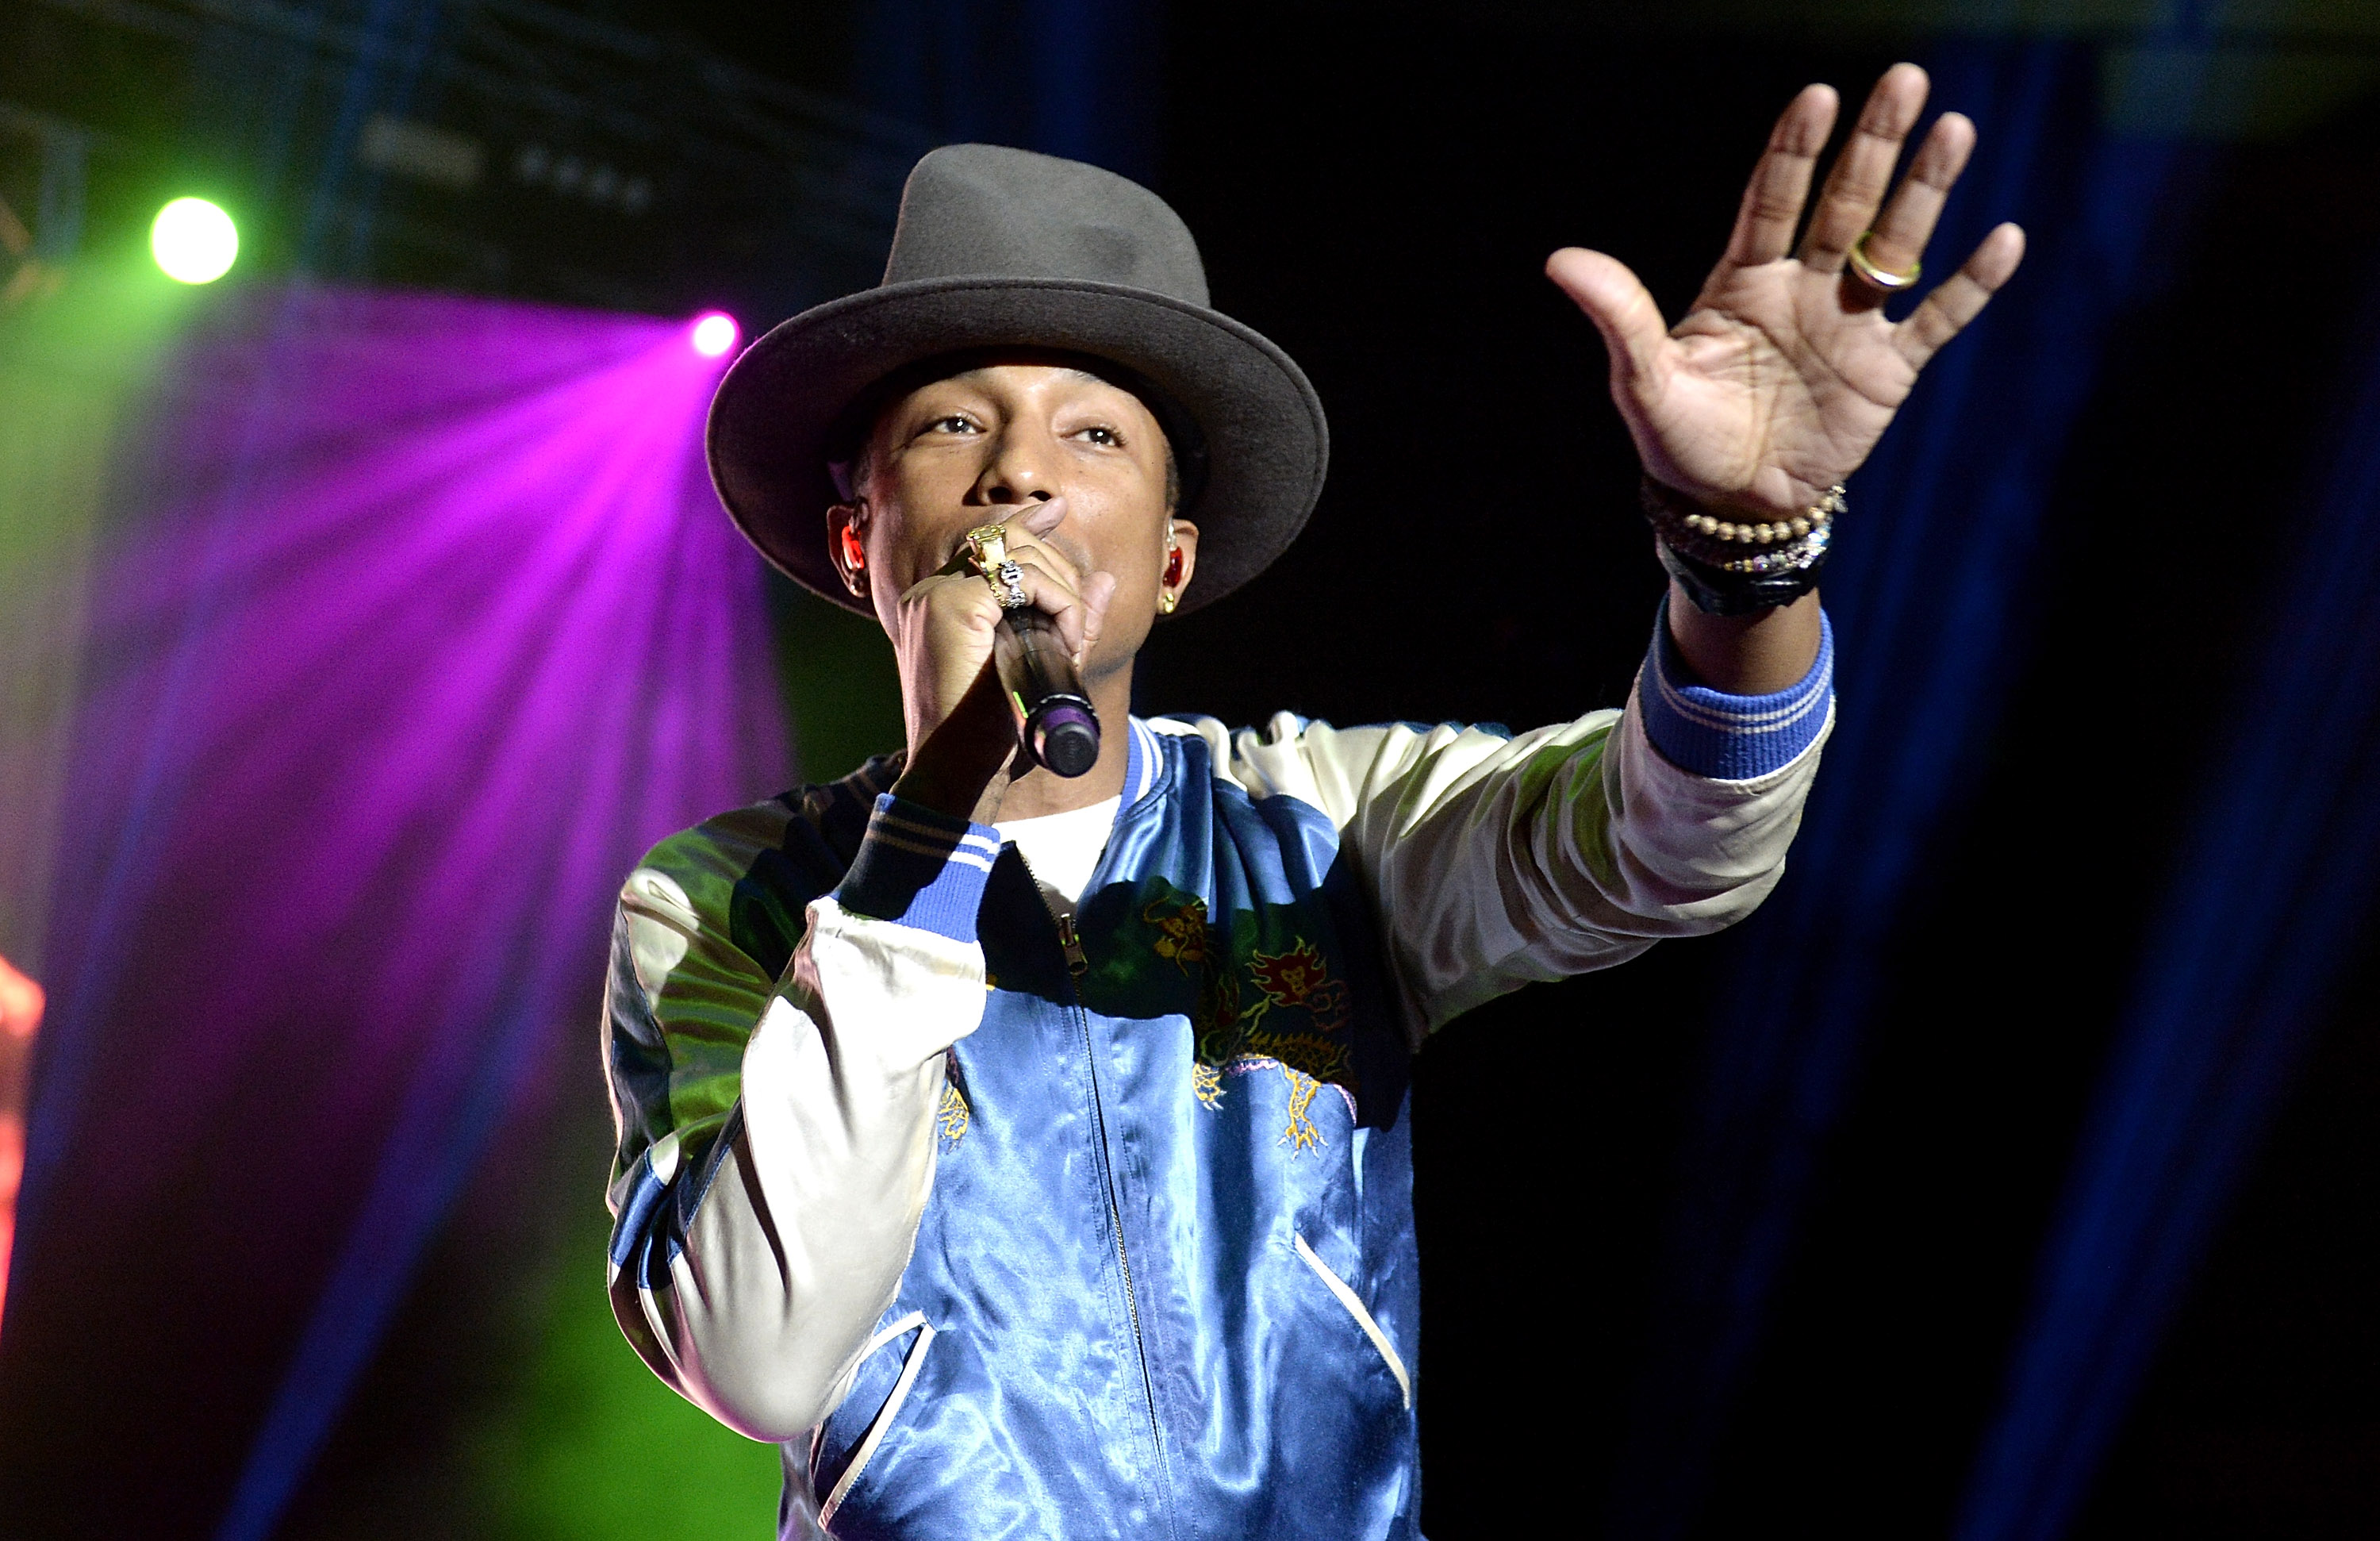 BRISBANE, AUSTRALIA - MARCH 12:  Pharrell performs live at The Riverstage on March 12, 2014 in Brisbane, Australia.  (Photo b